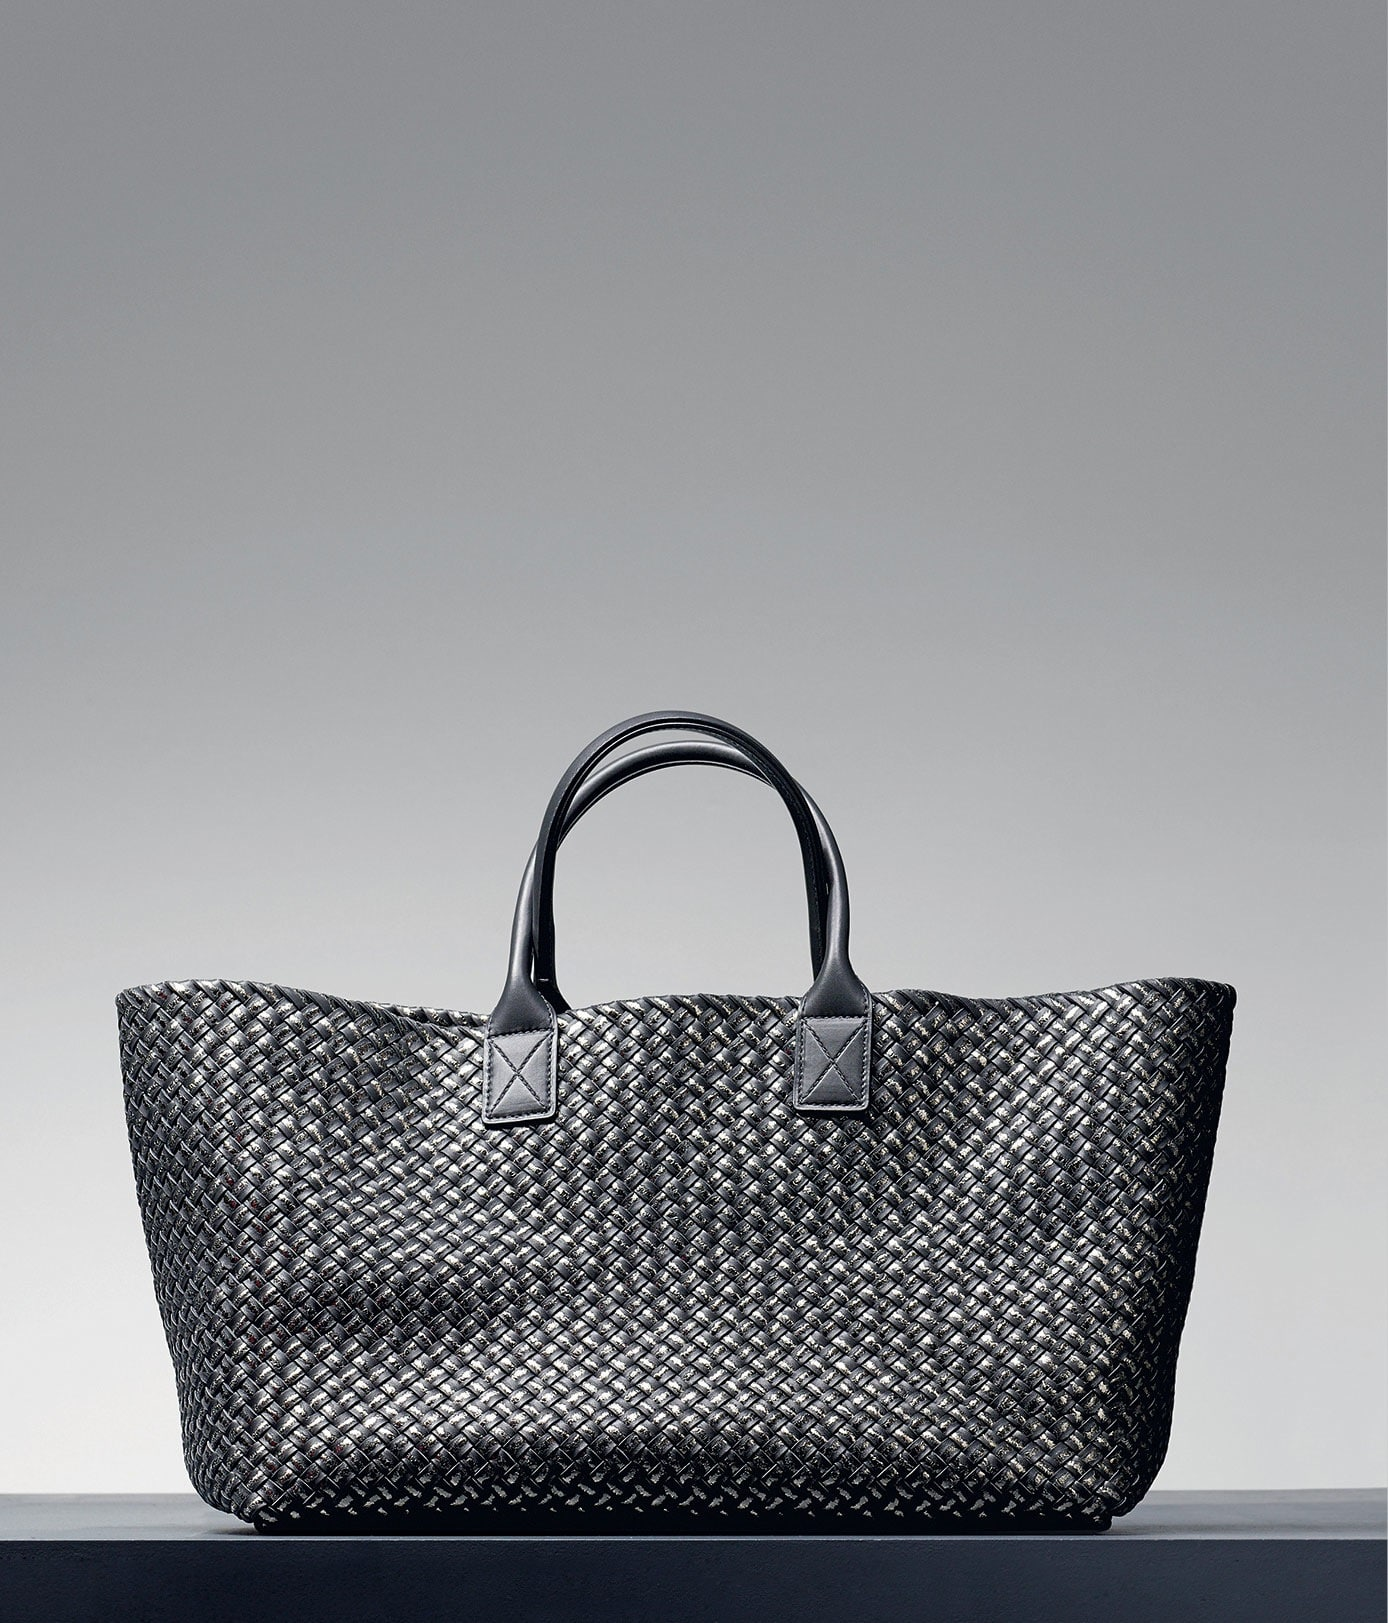 Bottega Veneta Ardoise Intreccio Placcato Cabat Bag - Pre-Fall 2014 63400442c727a